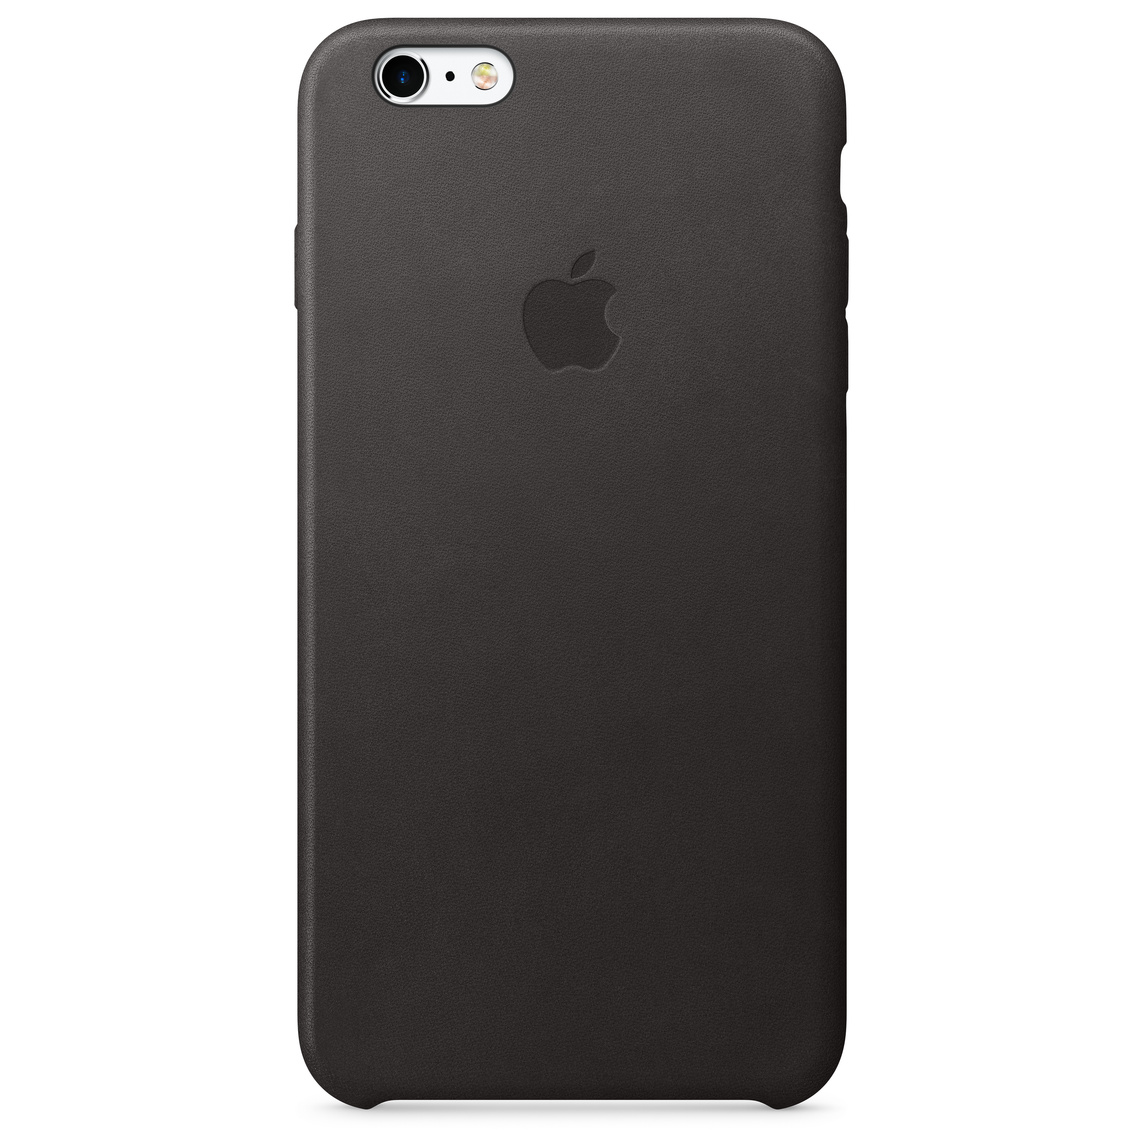 outlet store sale d215e 5dc30 iPhone 6 Plus / 6s Plus Leather Case - Black